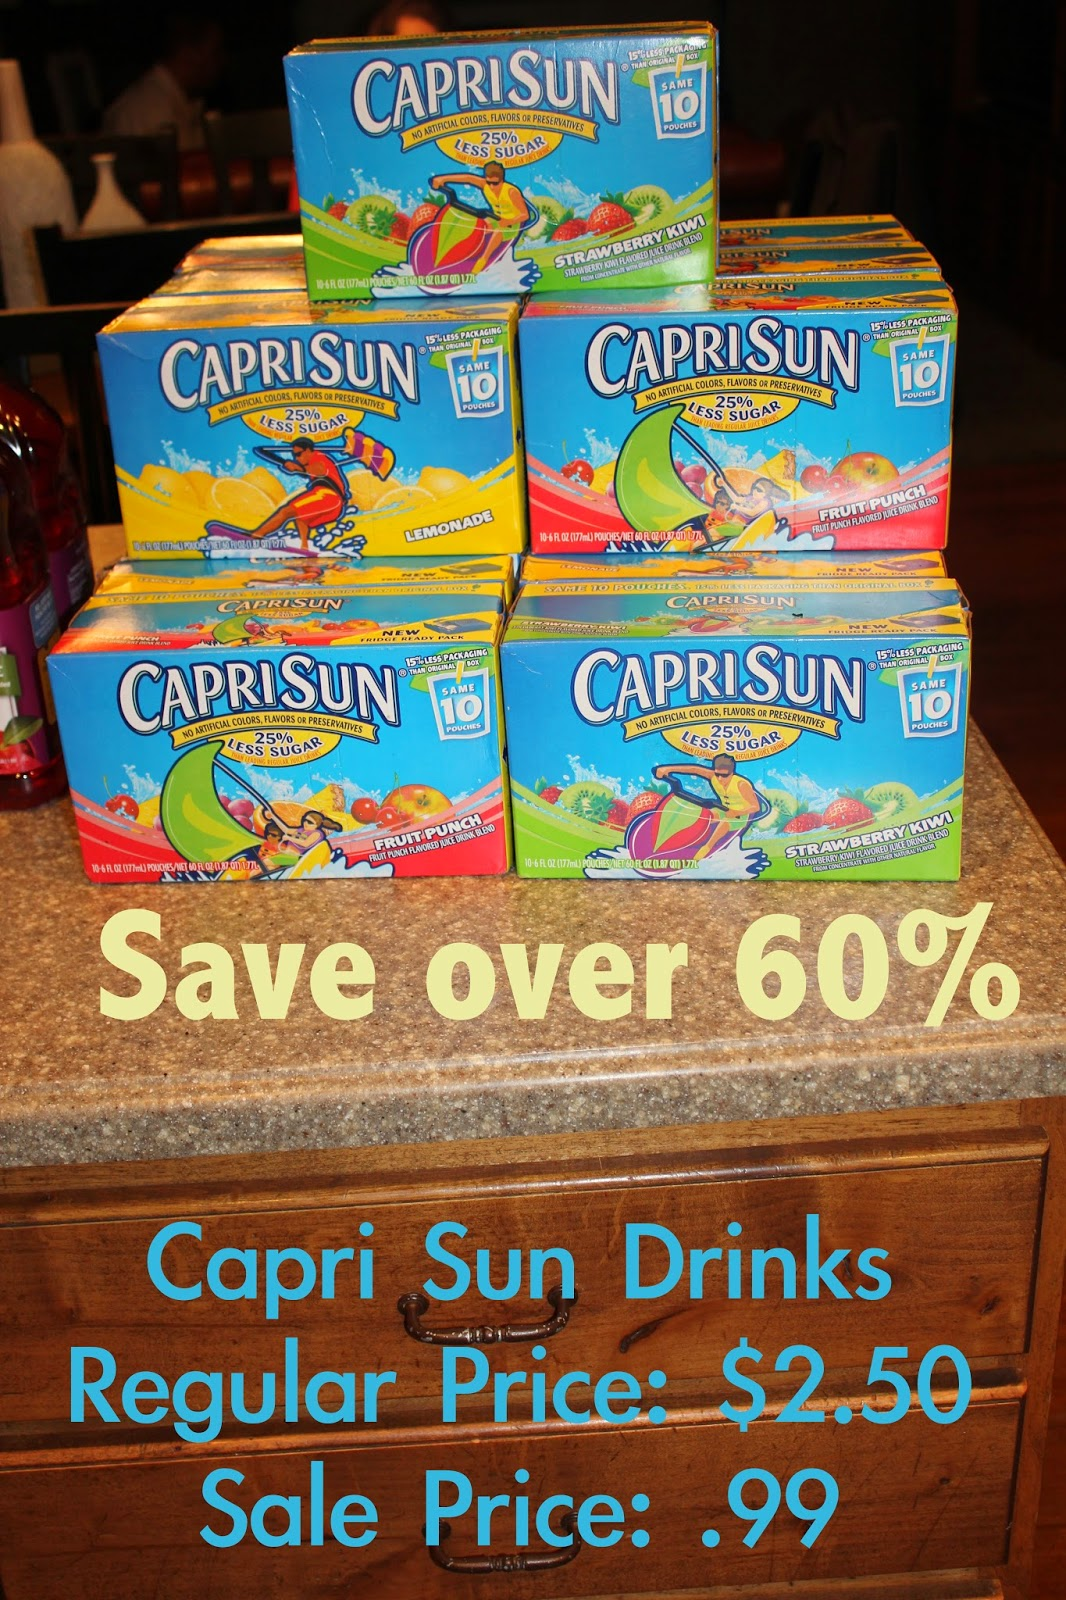 Capri Sun drinks only .99 a box--that's over 60% savings